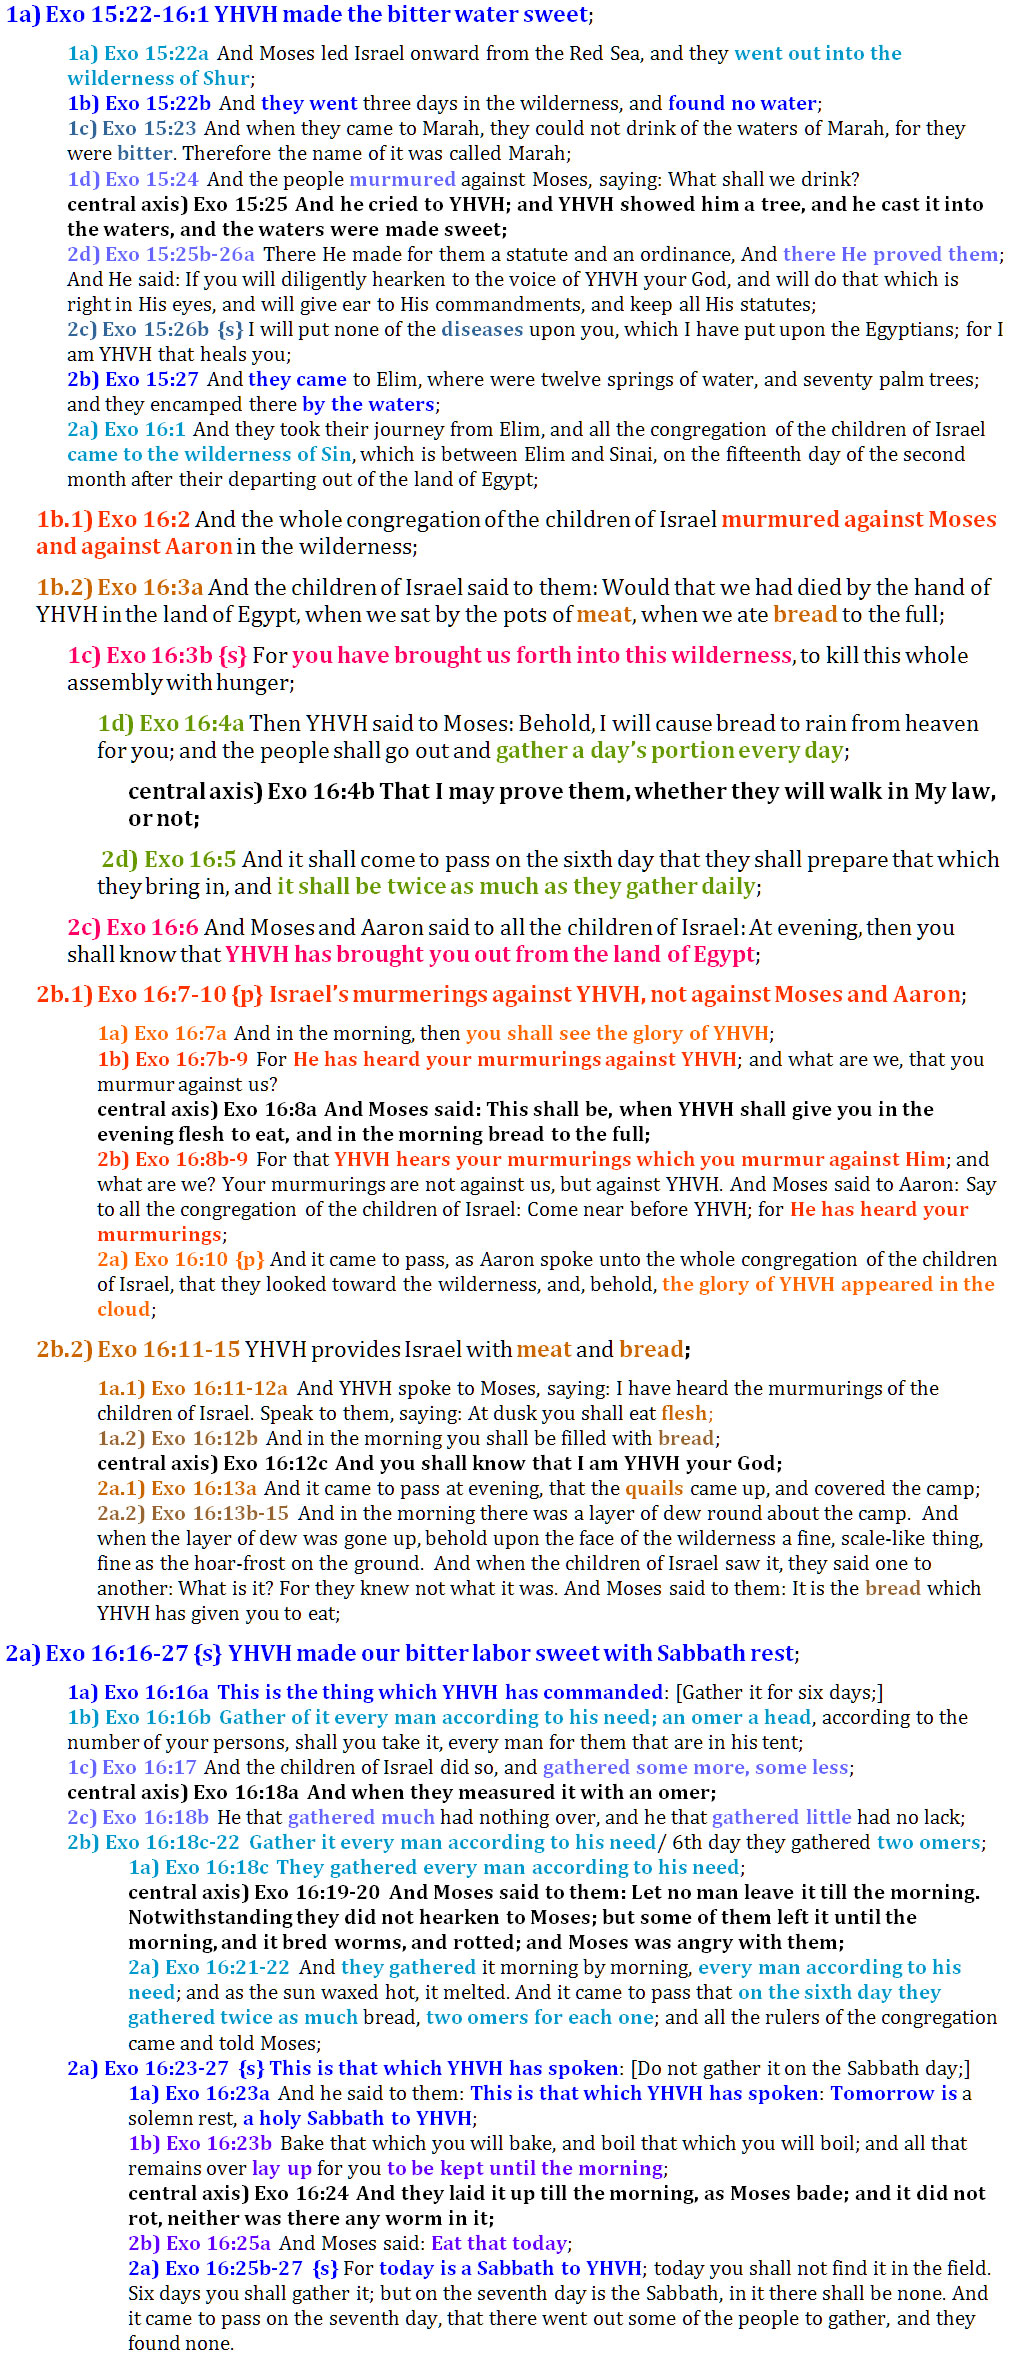 Exo 15:22-16:27 chiasm | christine's bible study at alittleperspective.com